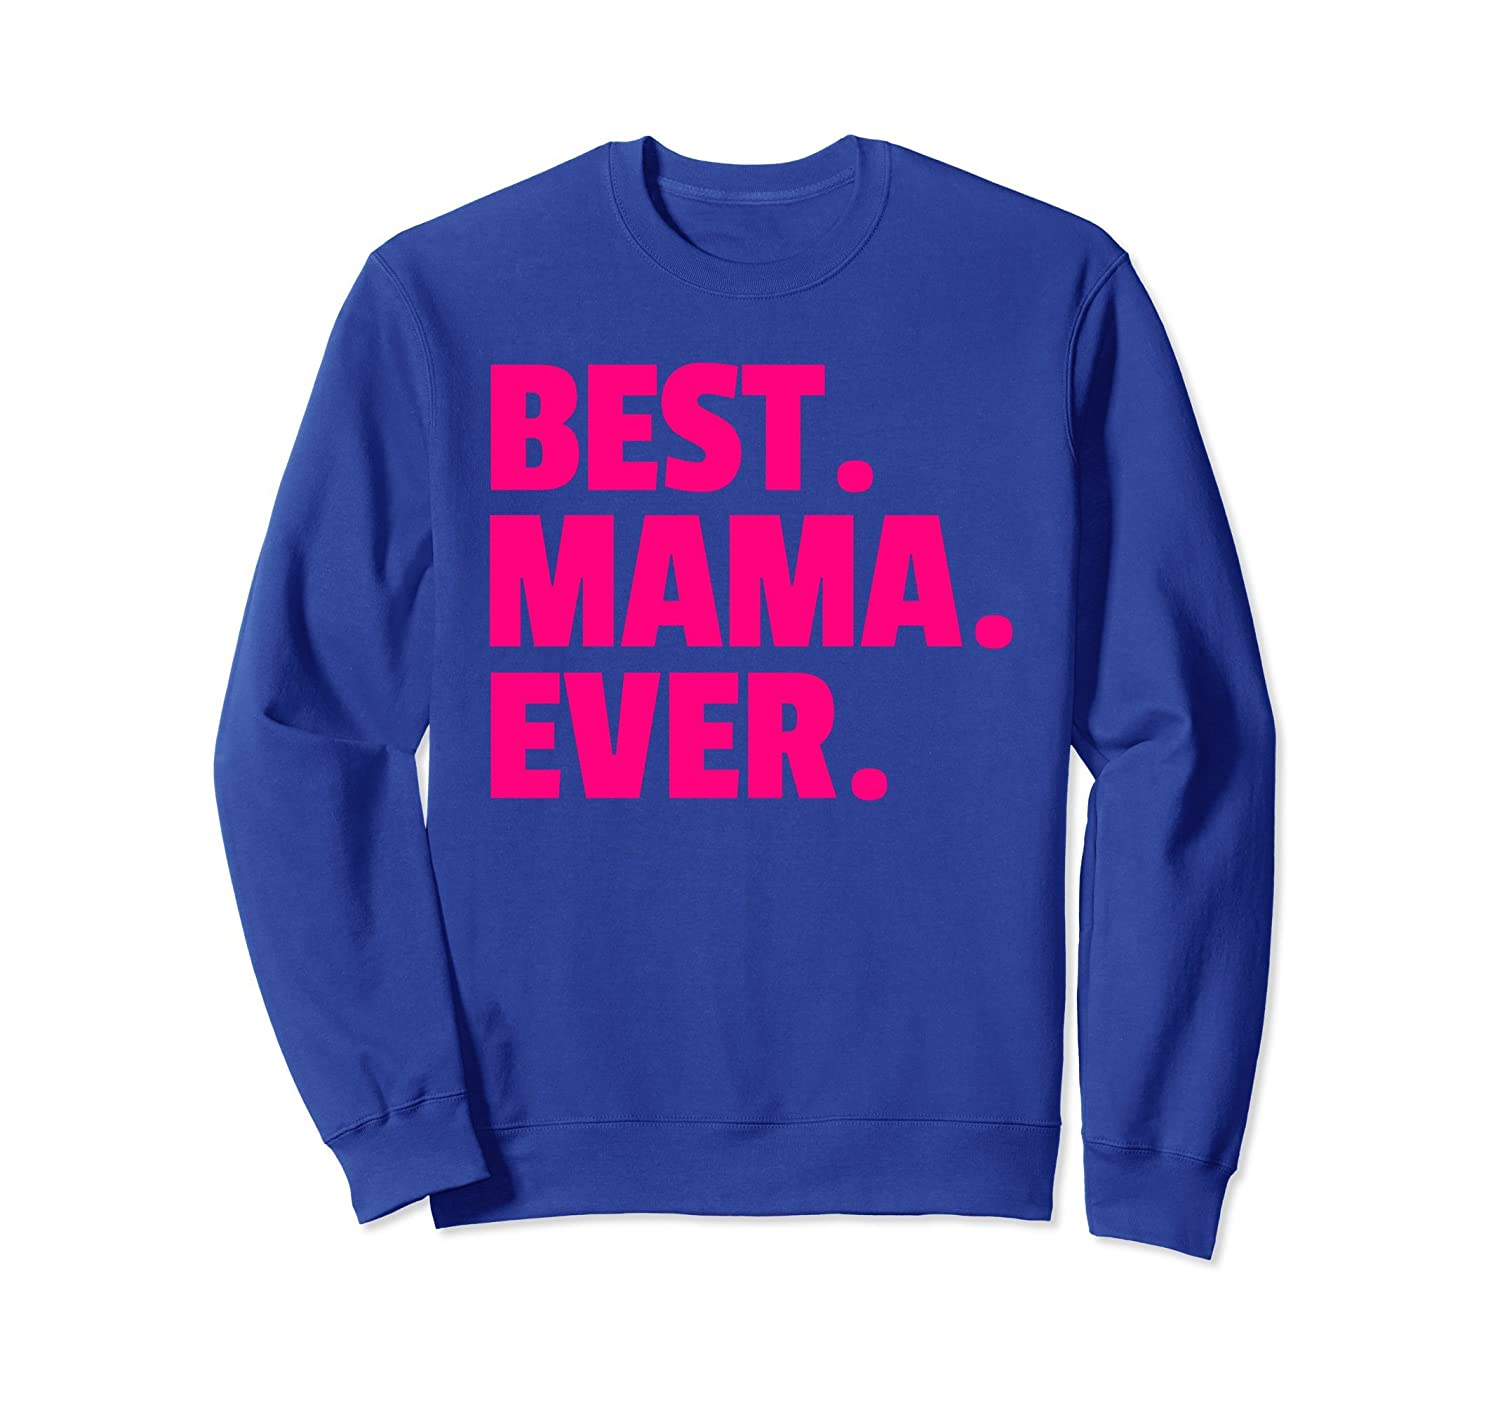 BEST MAMA EVER SWEATSHIRT GIFT MOTHER'S DAY MOM GIFT-mt